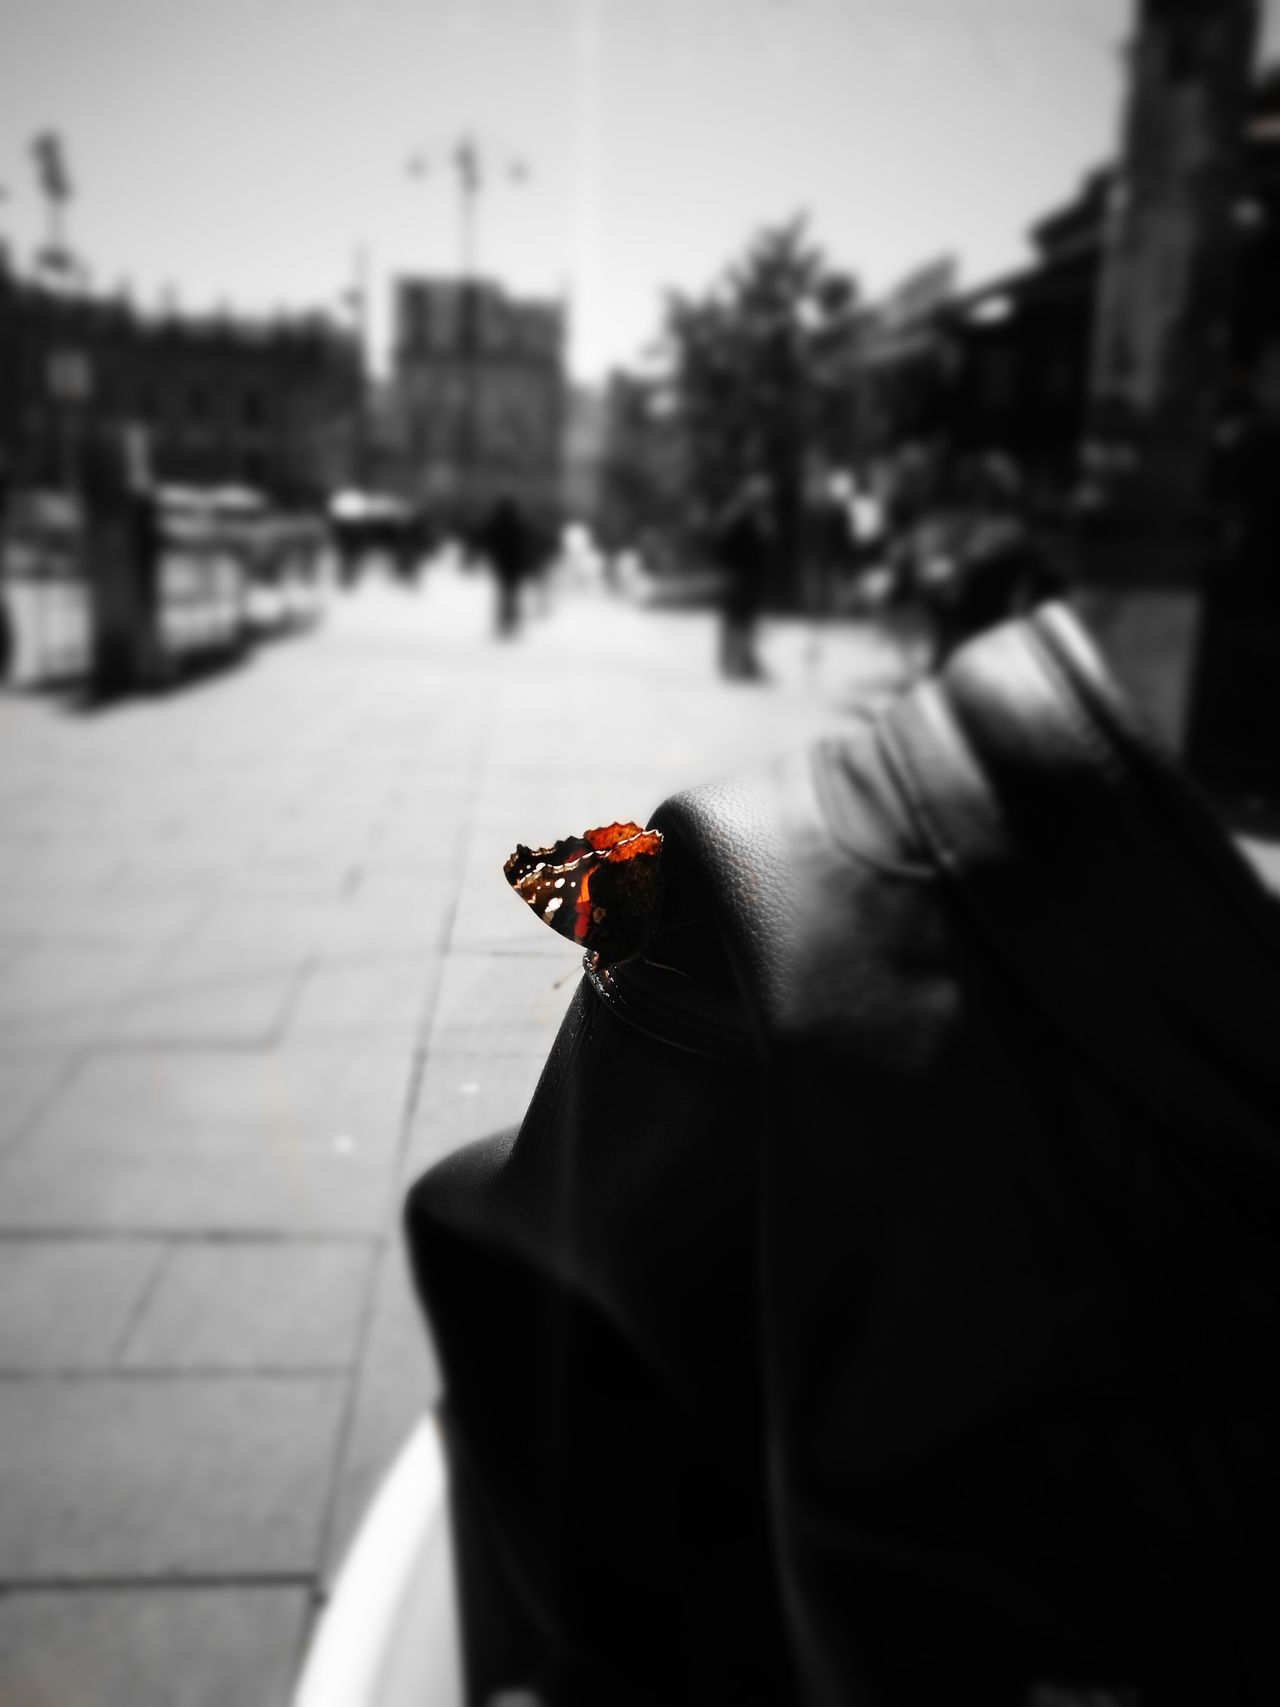 Butterfly Outdoors Day City Nature Beauty In Nature Colorful Color Photography Artphotography Love Napoliphotoproject Napolidavivere Napoli_foto Napolinstagram Napolinelcuore Sky Napoli Single Object First Eyeem Photo Artistic Photo Arcobaleno  Aroundtheworld Colour Of Life